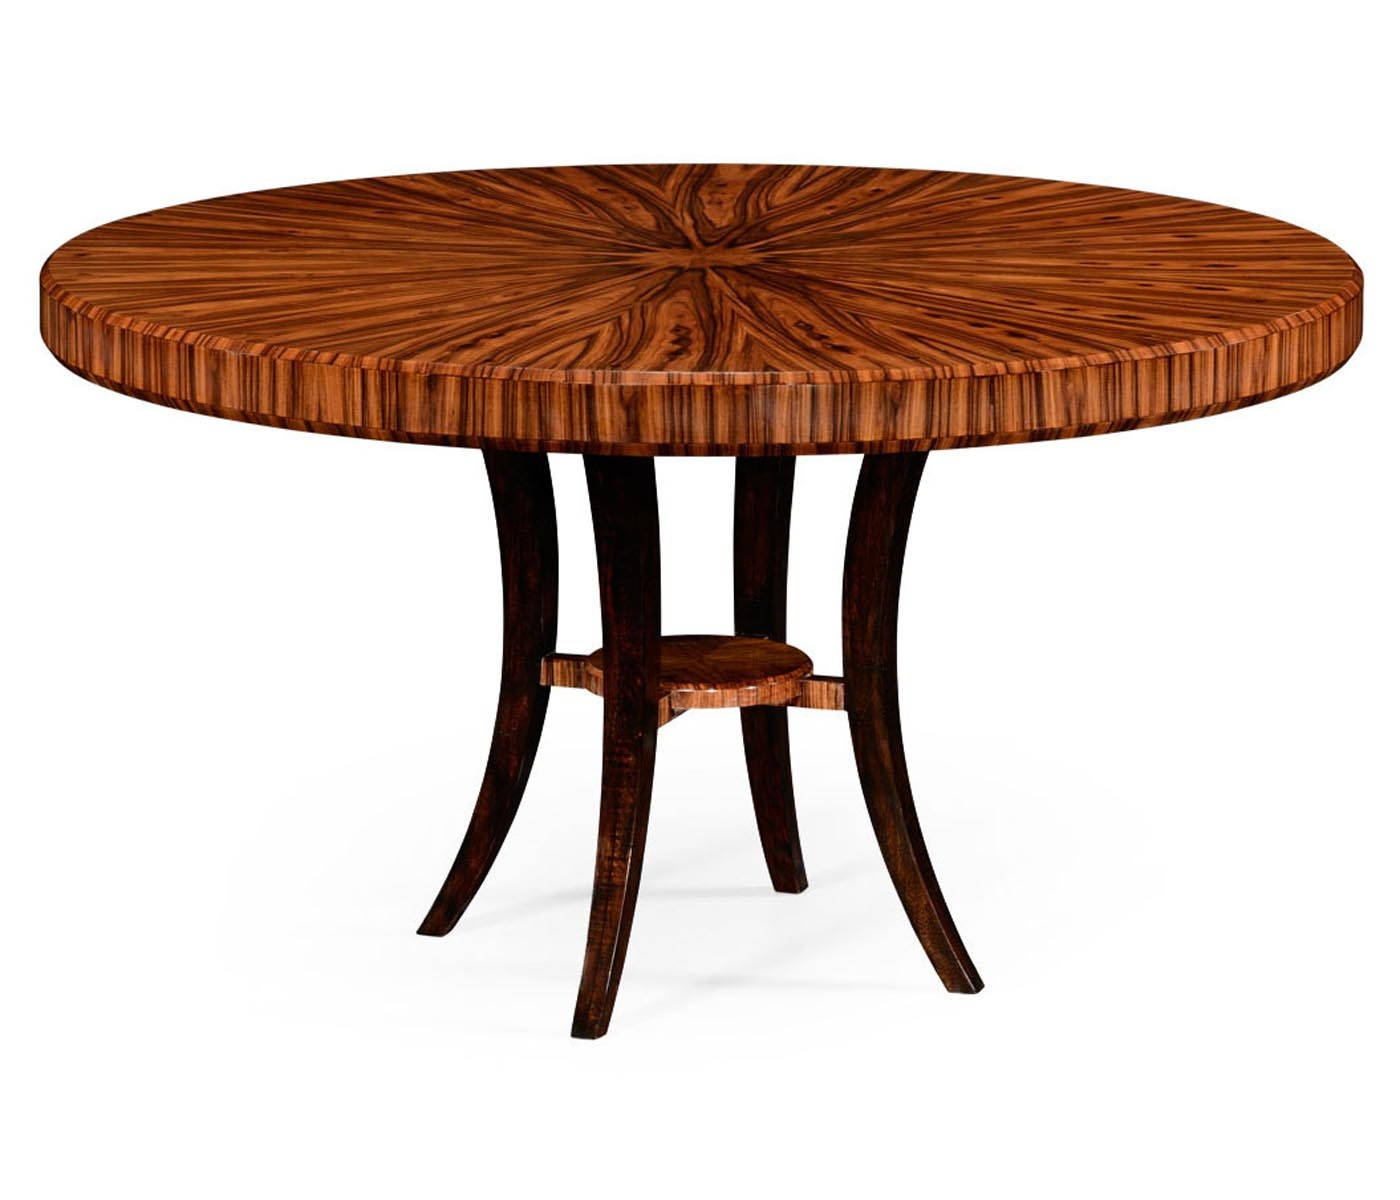 6 Seater Round Dining Table: 6 Seater Art Deco Round Dining Table 54''